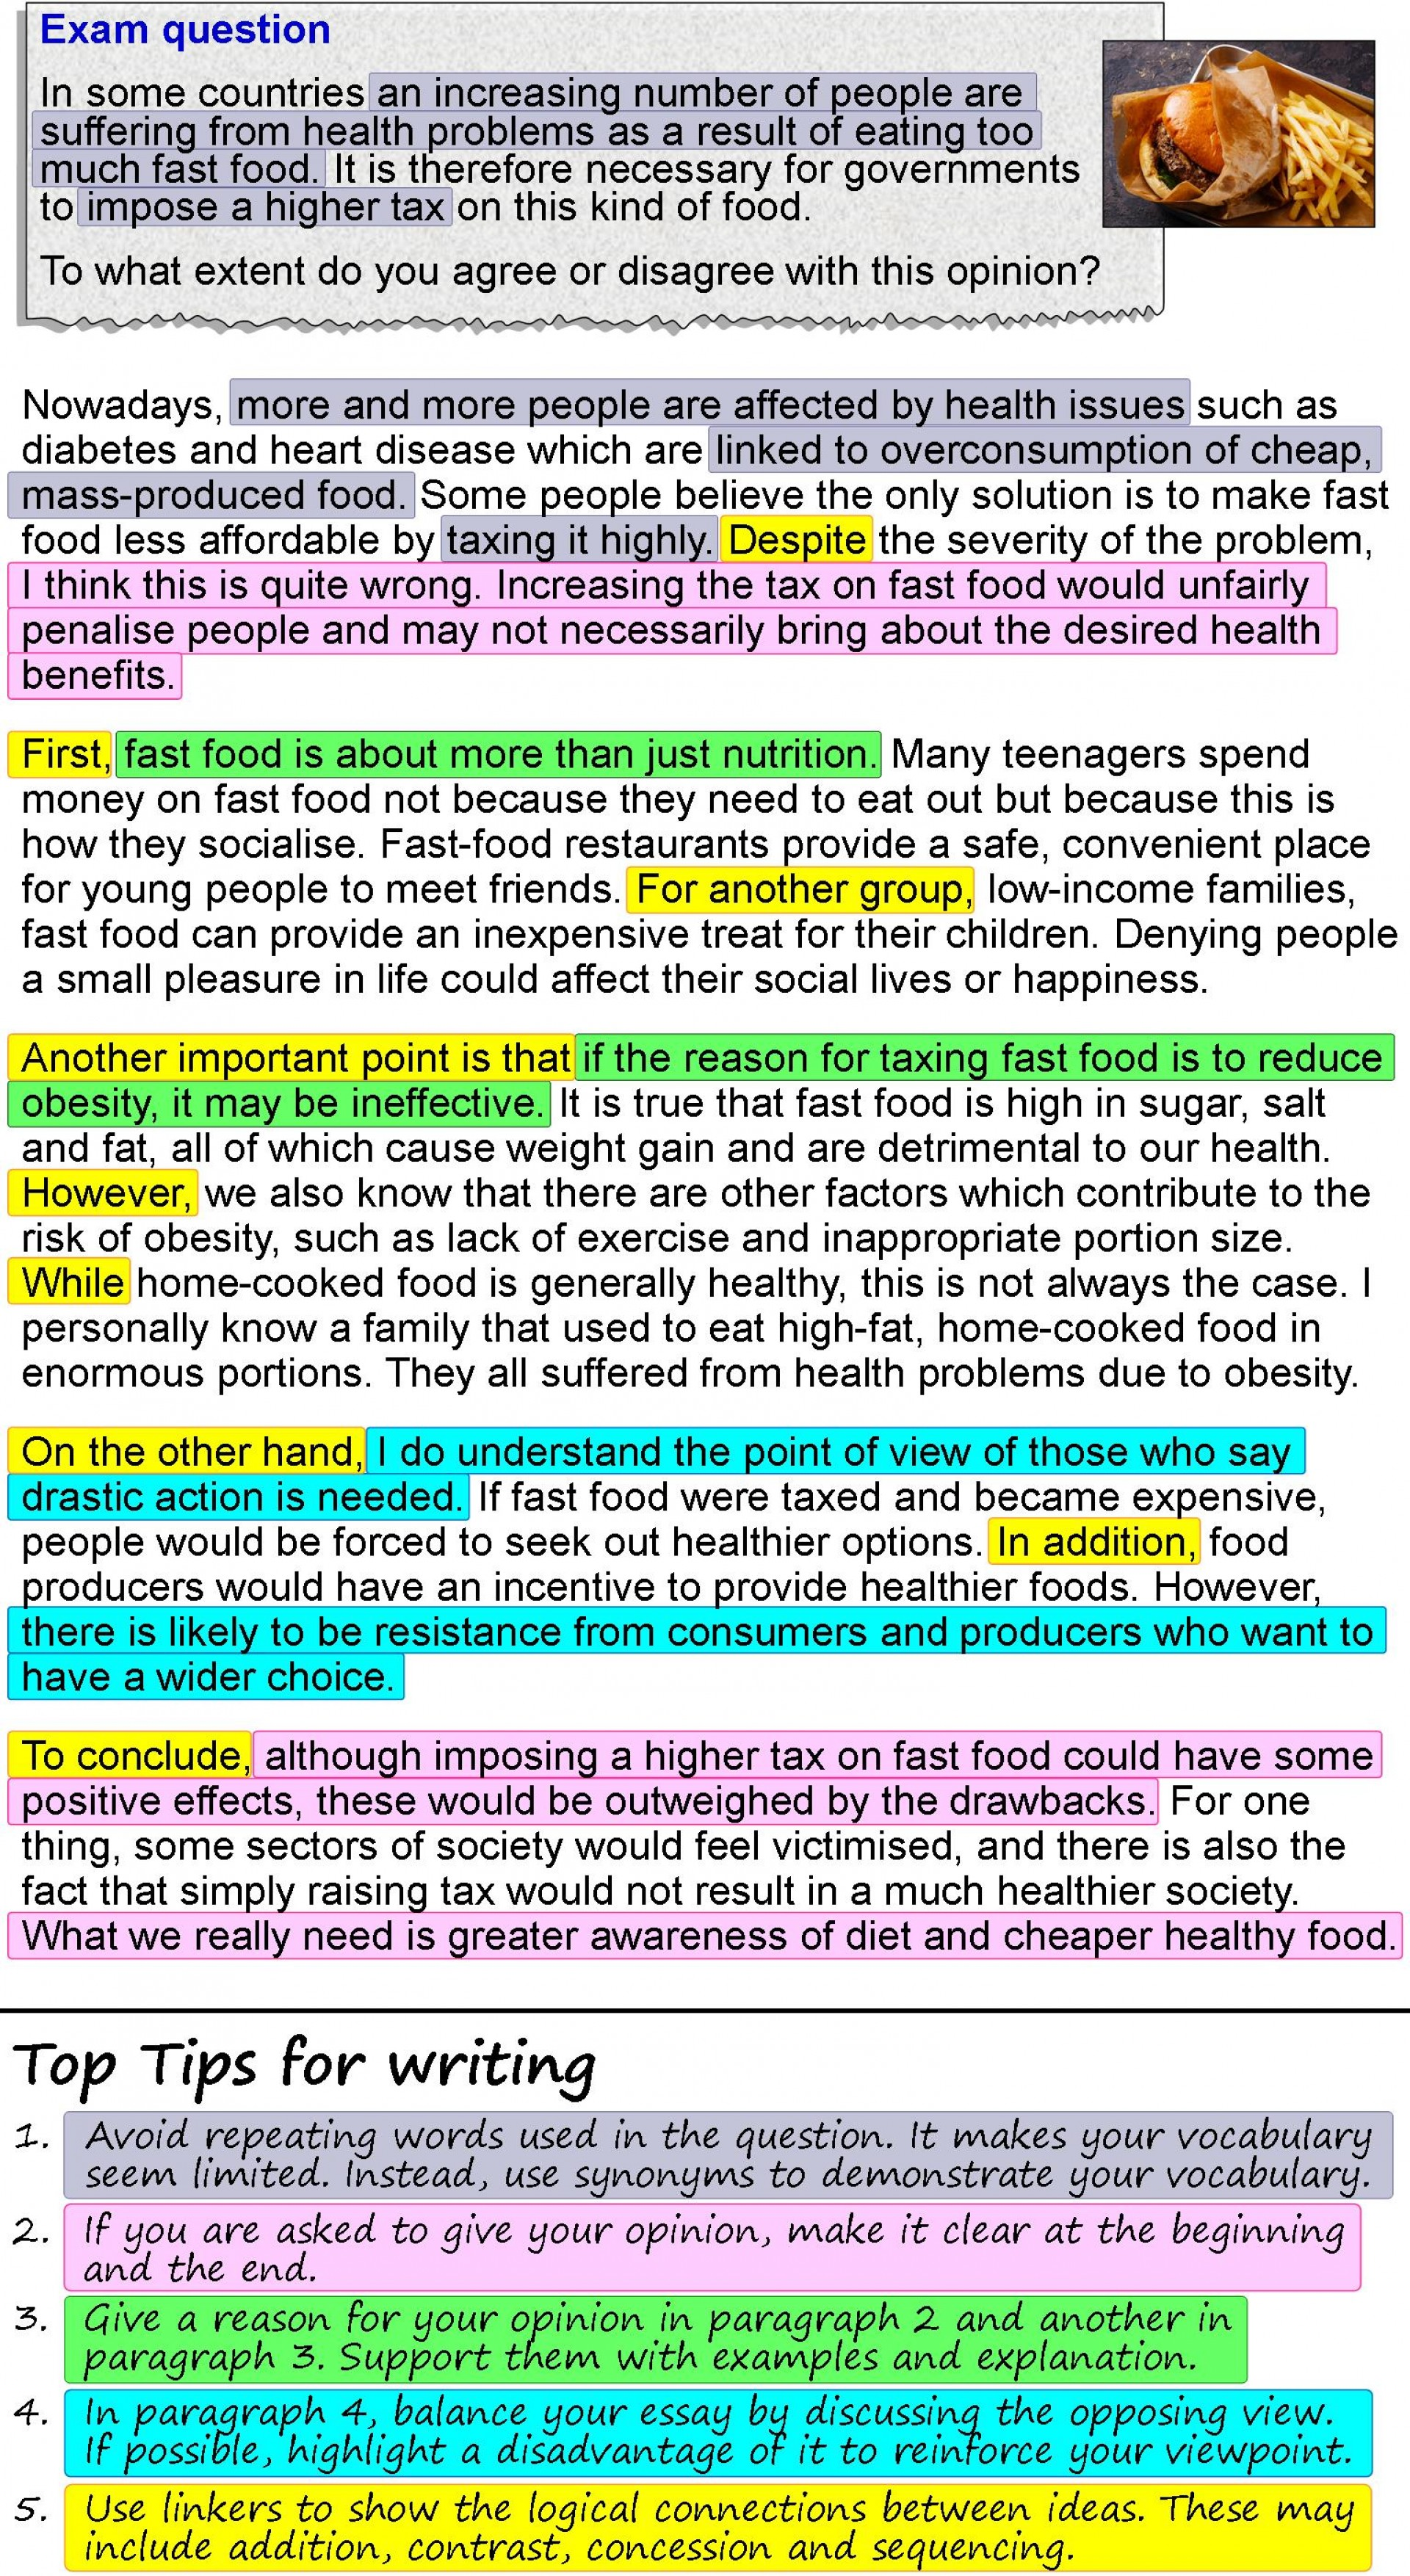 002 Essay Example Opinion An About Fast Food 4 Magnificent Prompts 6th Grade Examples 3rd 1920